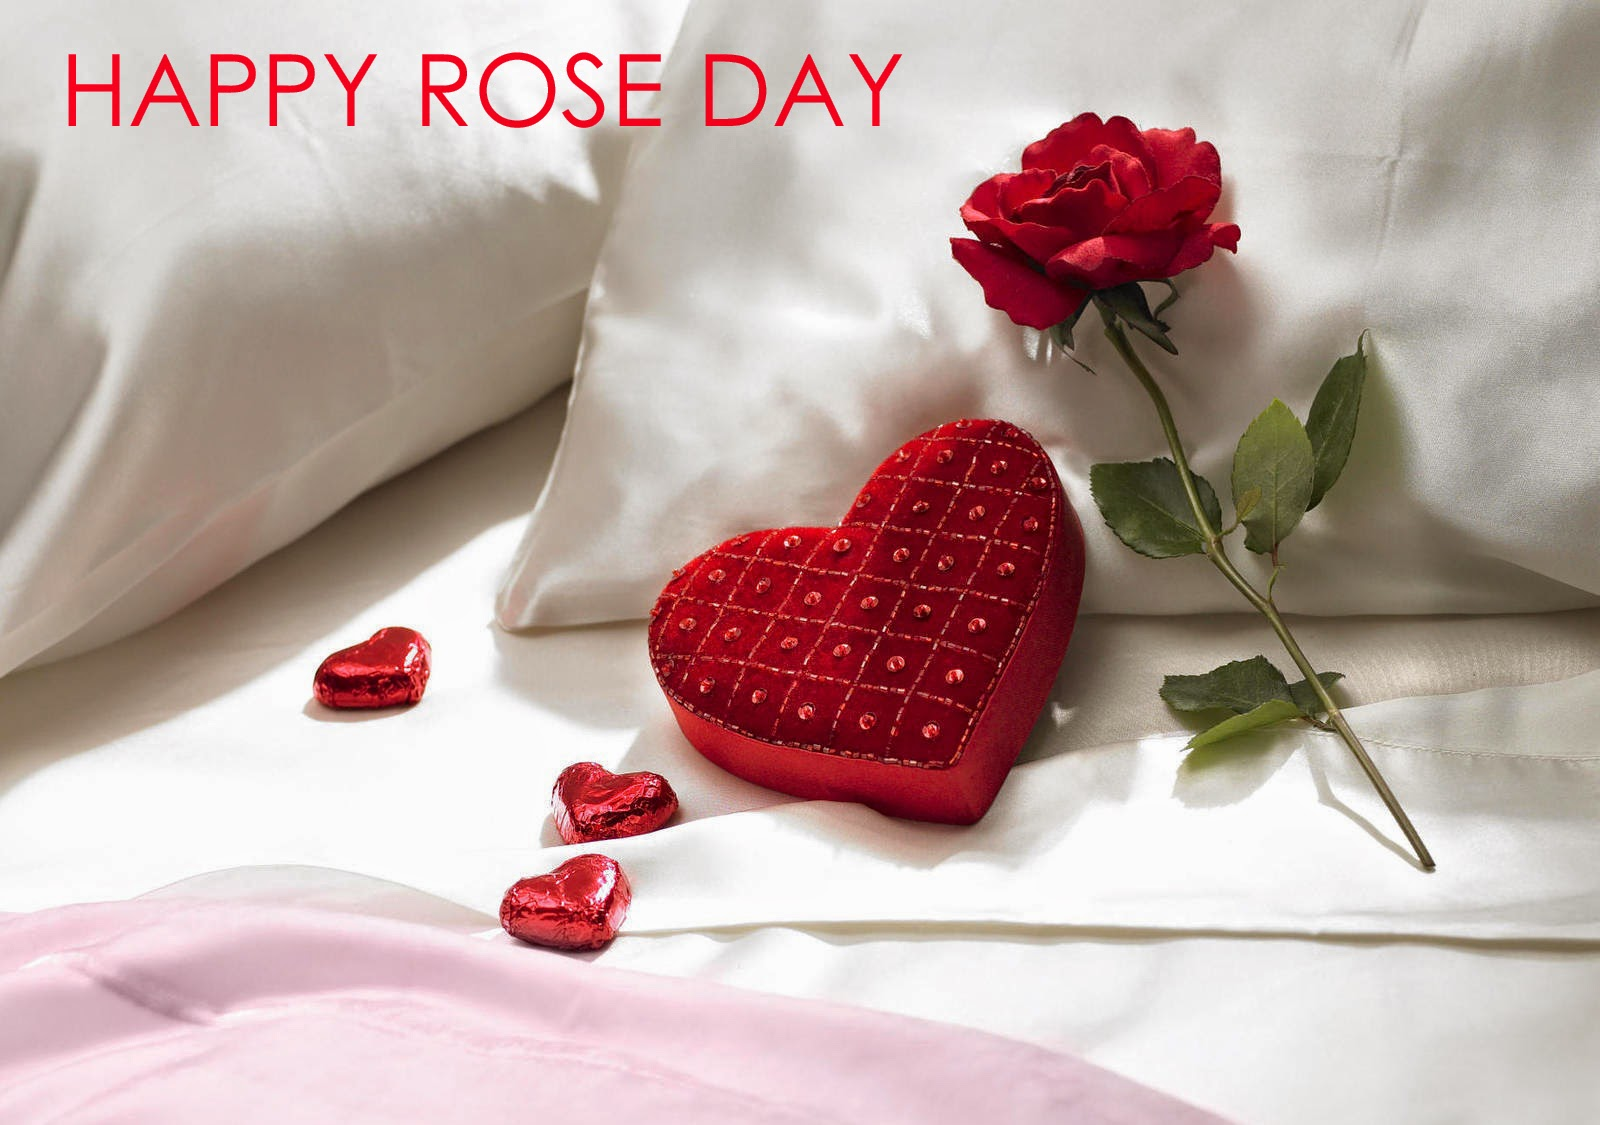 Happy Rose Day Pic Quotes Sms Image Wallpapers 2019